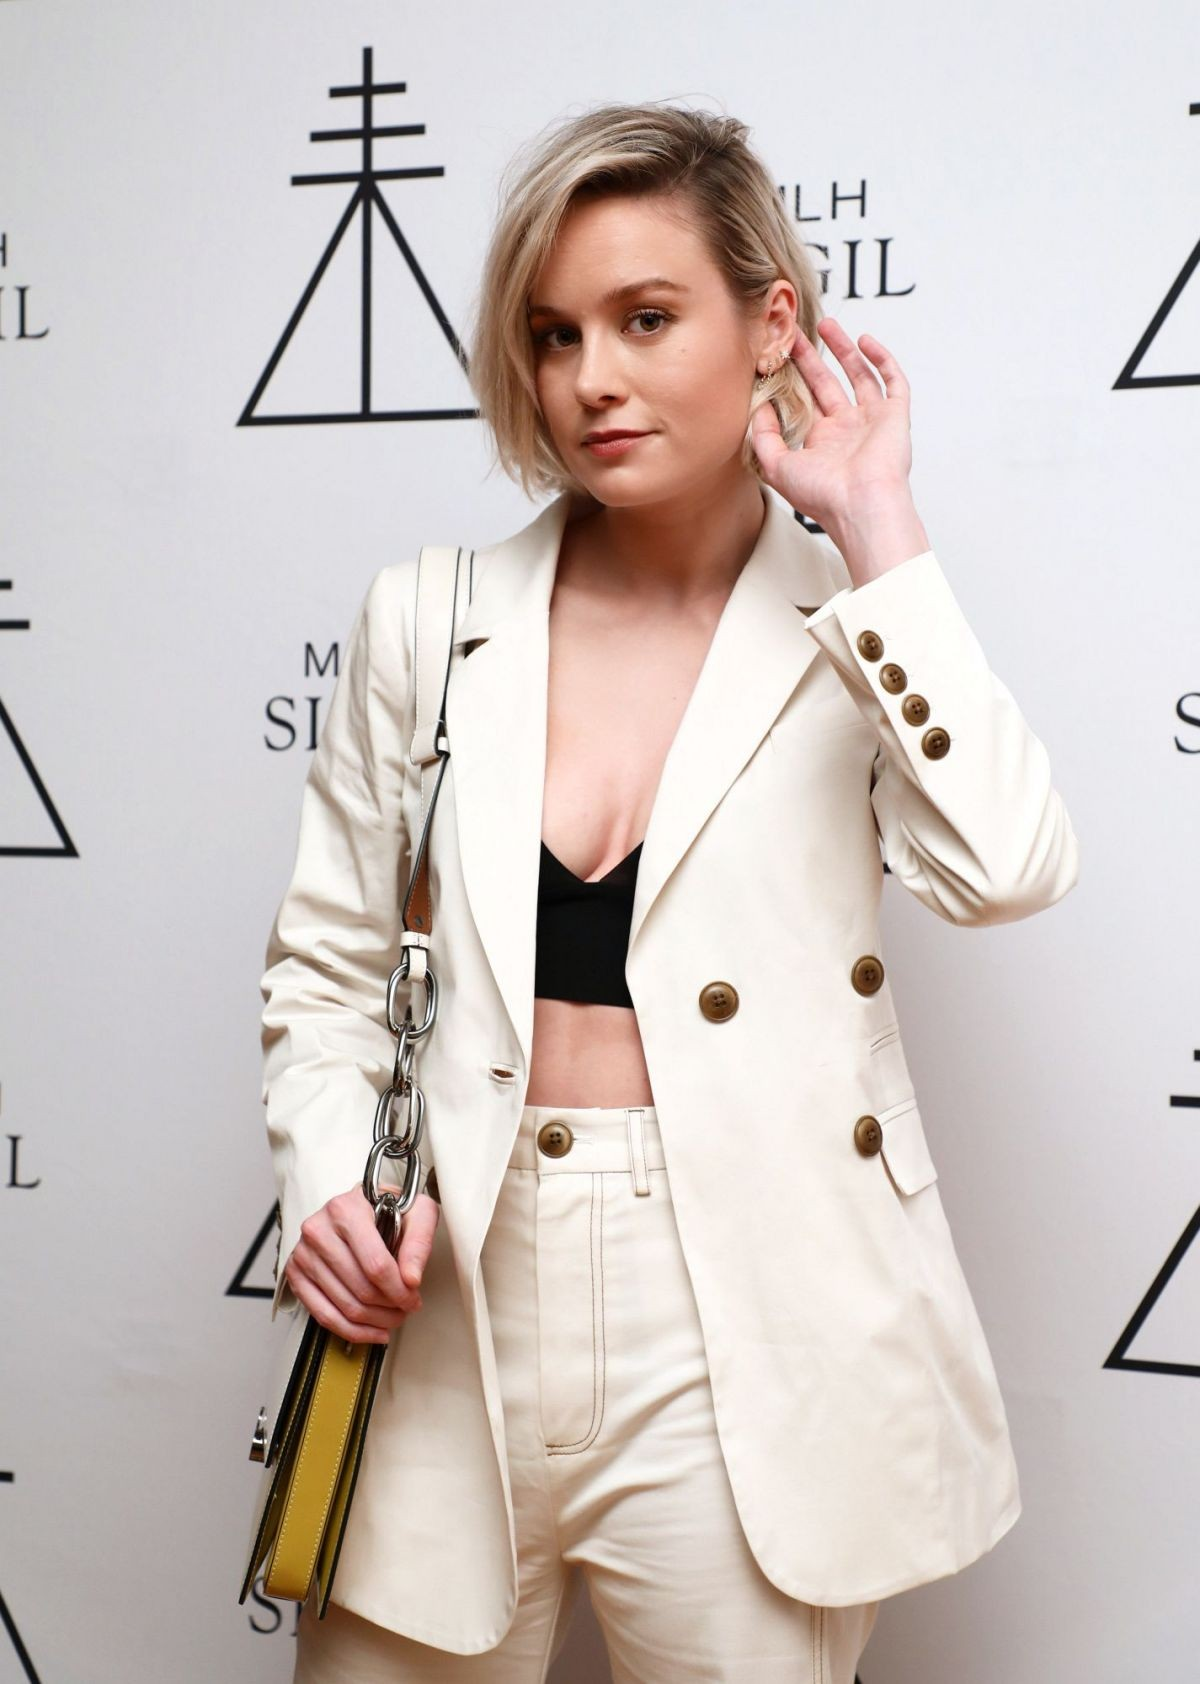 Brie Larson at MHL Sigil Fragrance Launch Party in Los Angeles 2019/04/30 2